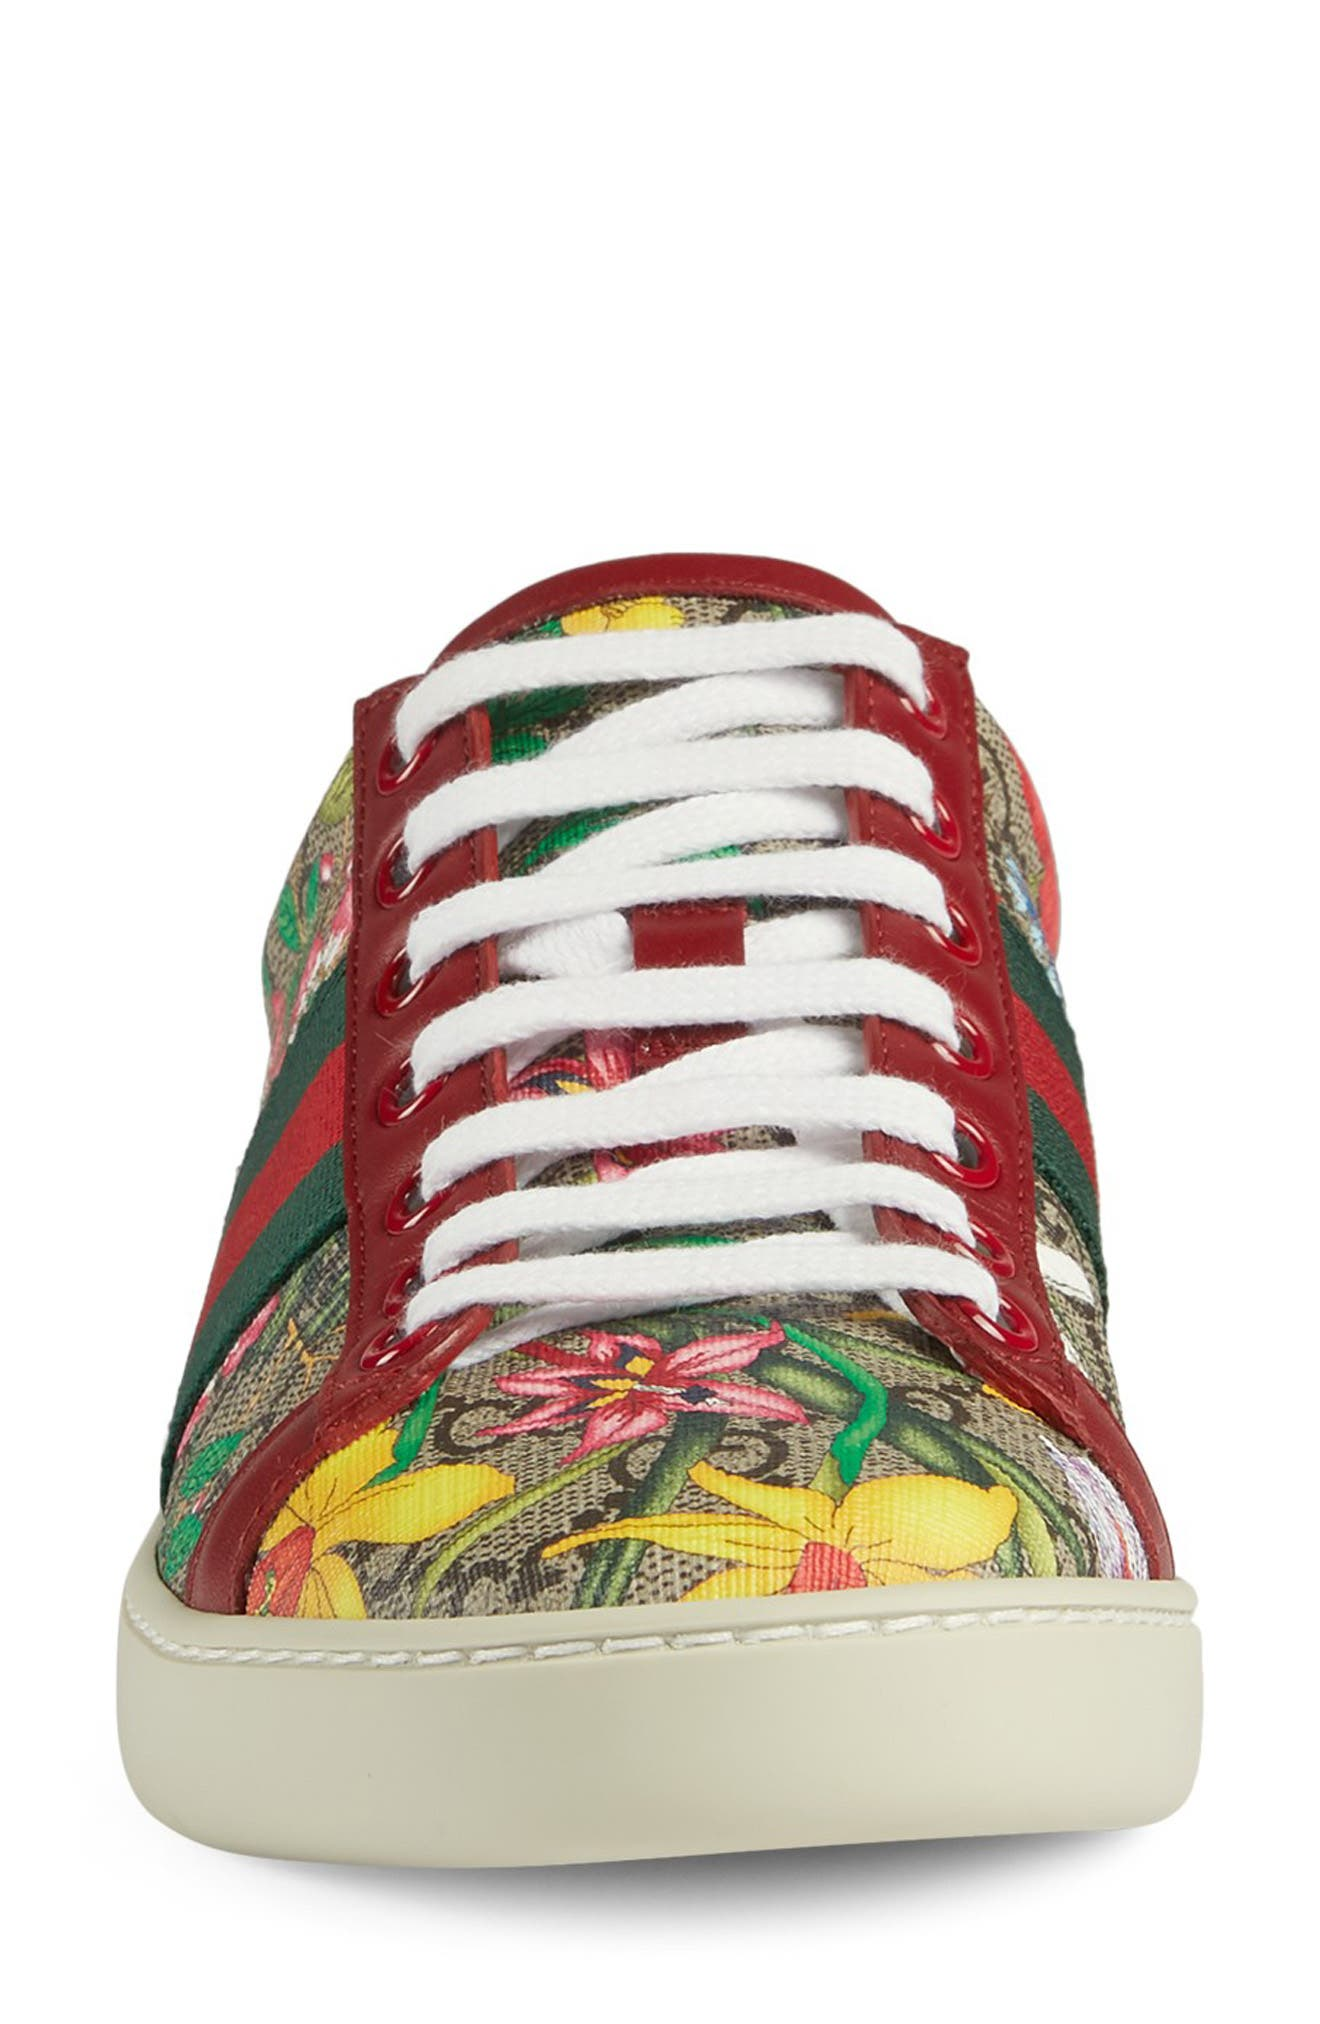 Gucci Sneakers New Ace GG Supreme Floral Sneaker